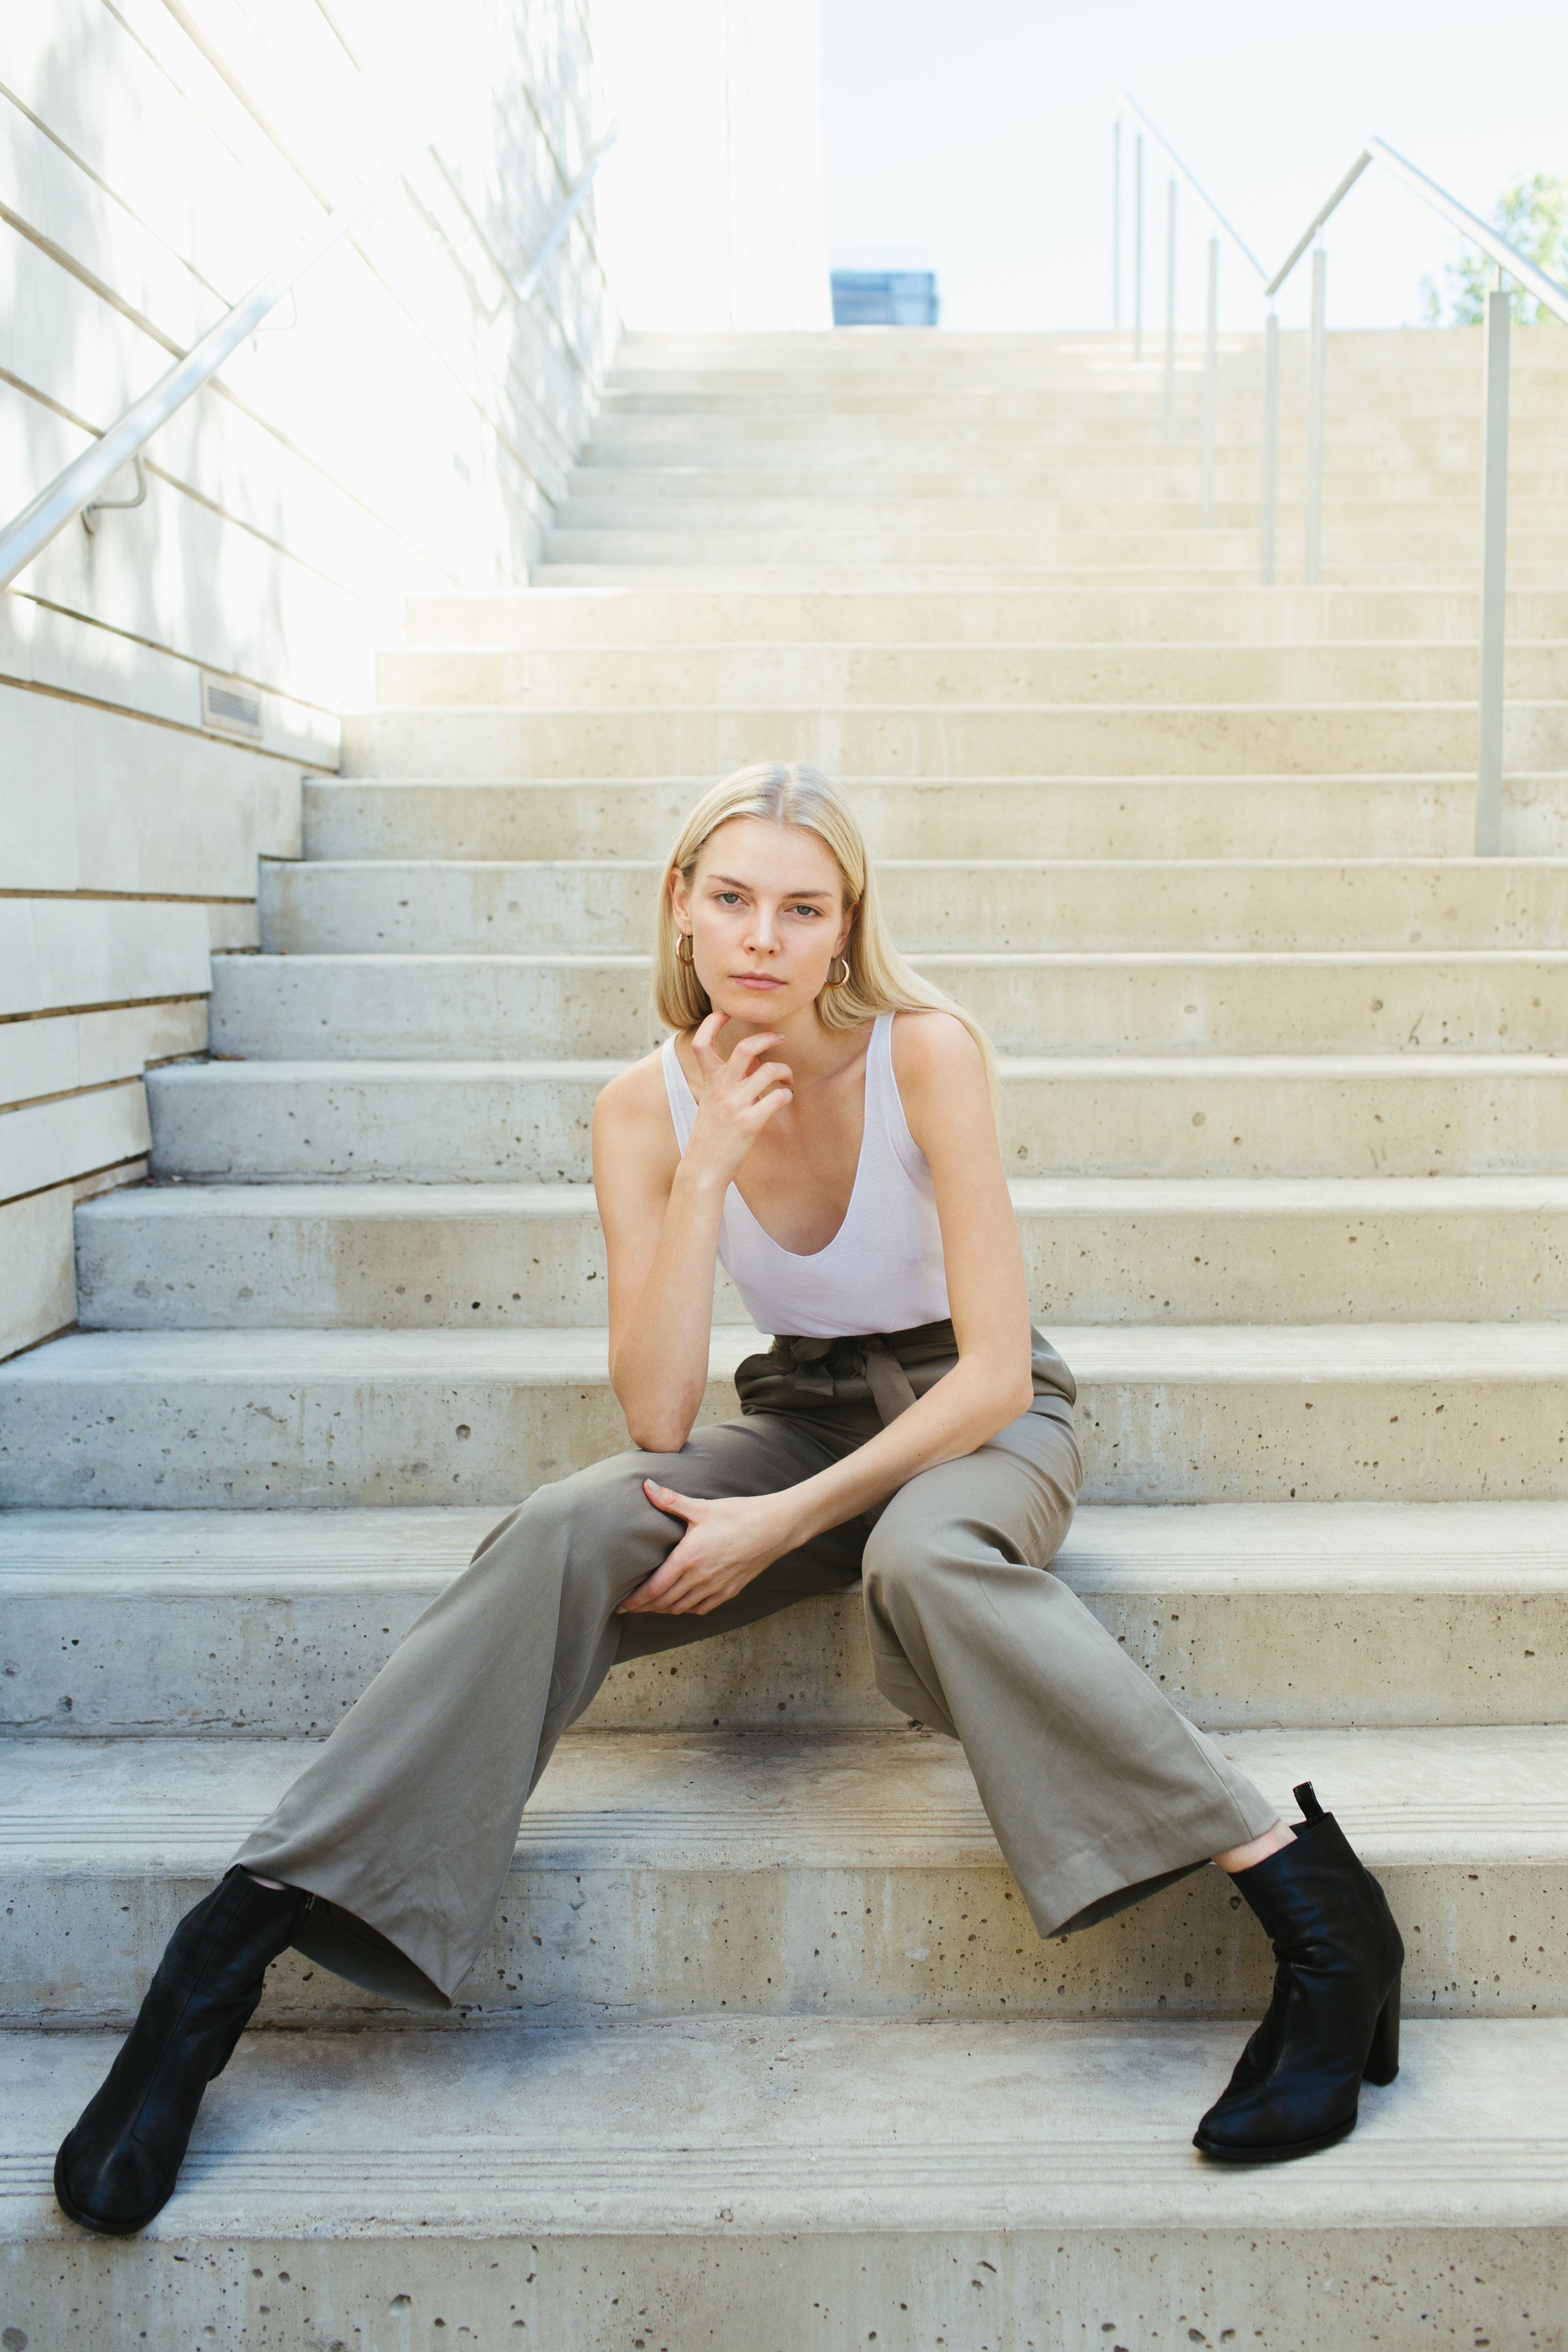 Paige-Newton-Imagery-Portrait-Photography-Influencer-Blogger-Downtown-Austin0030.jpg